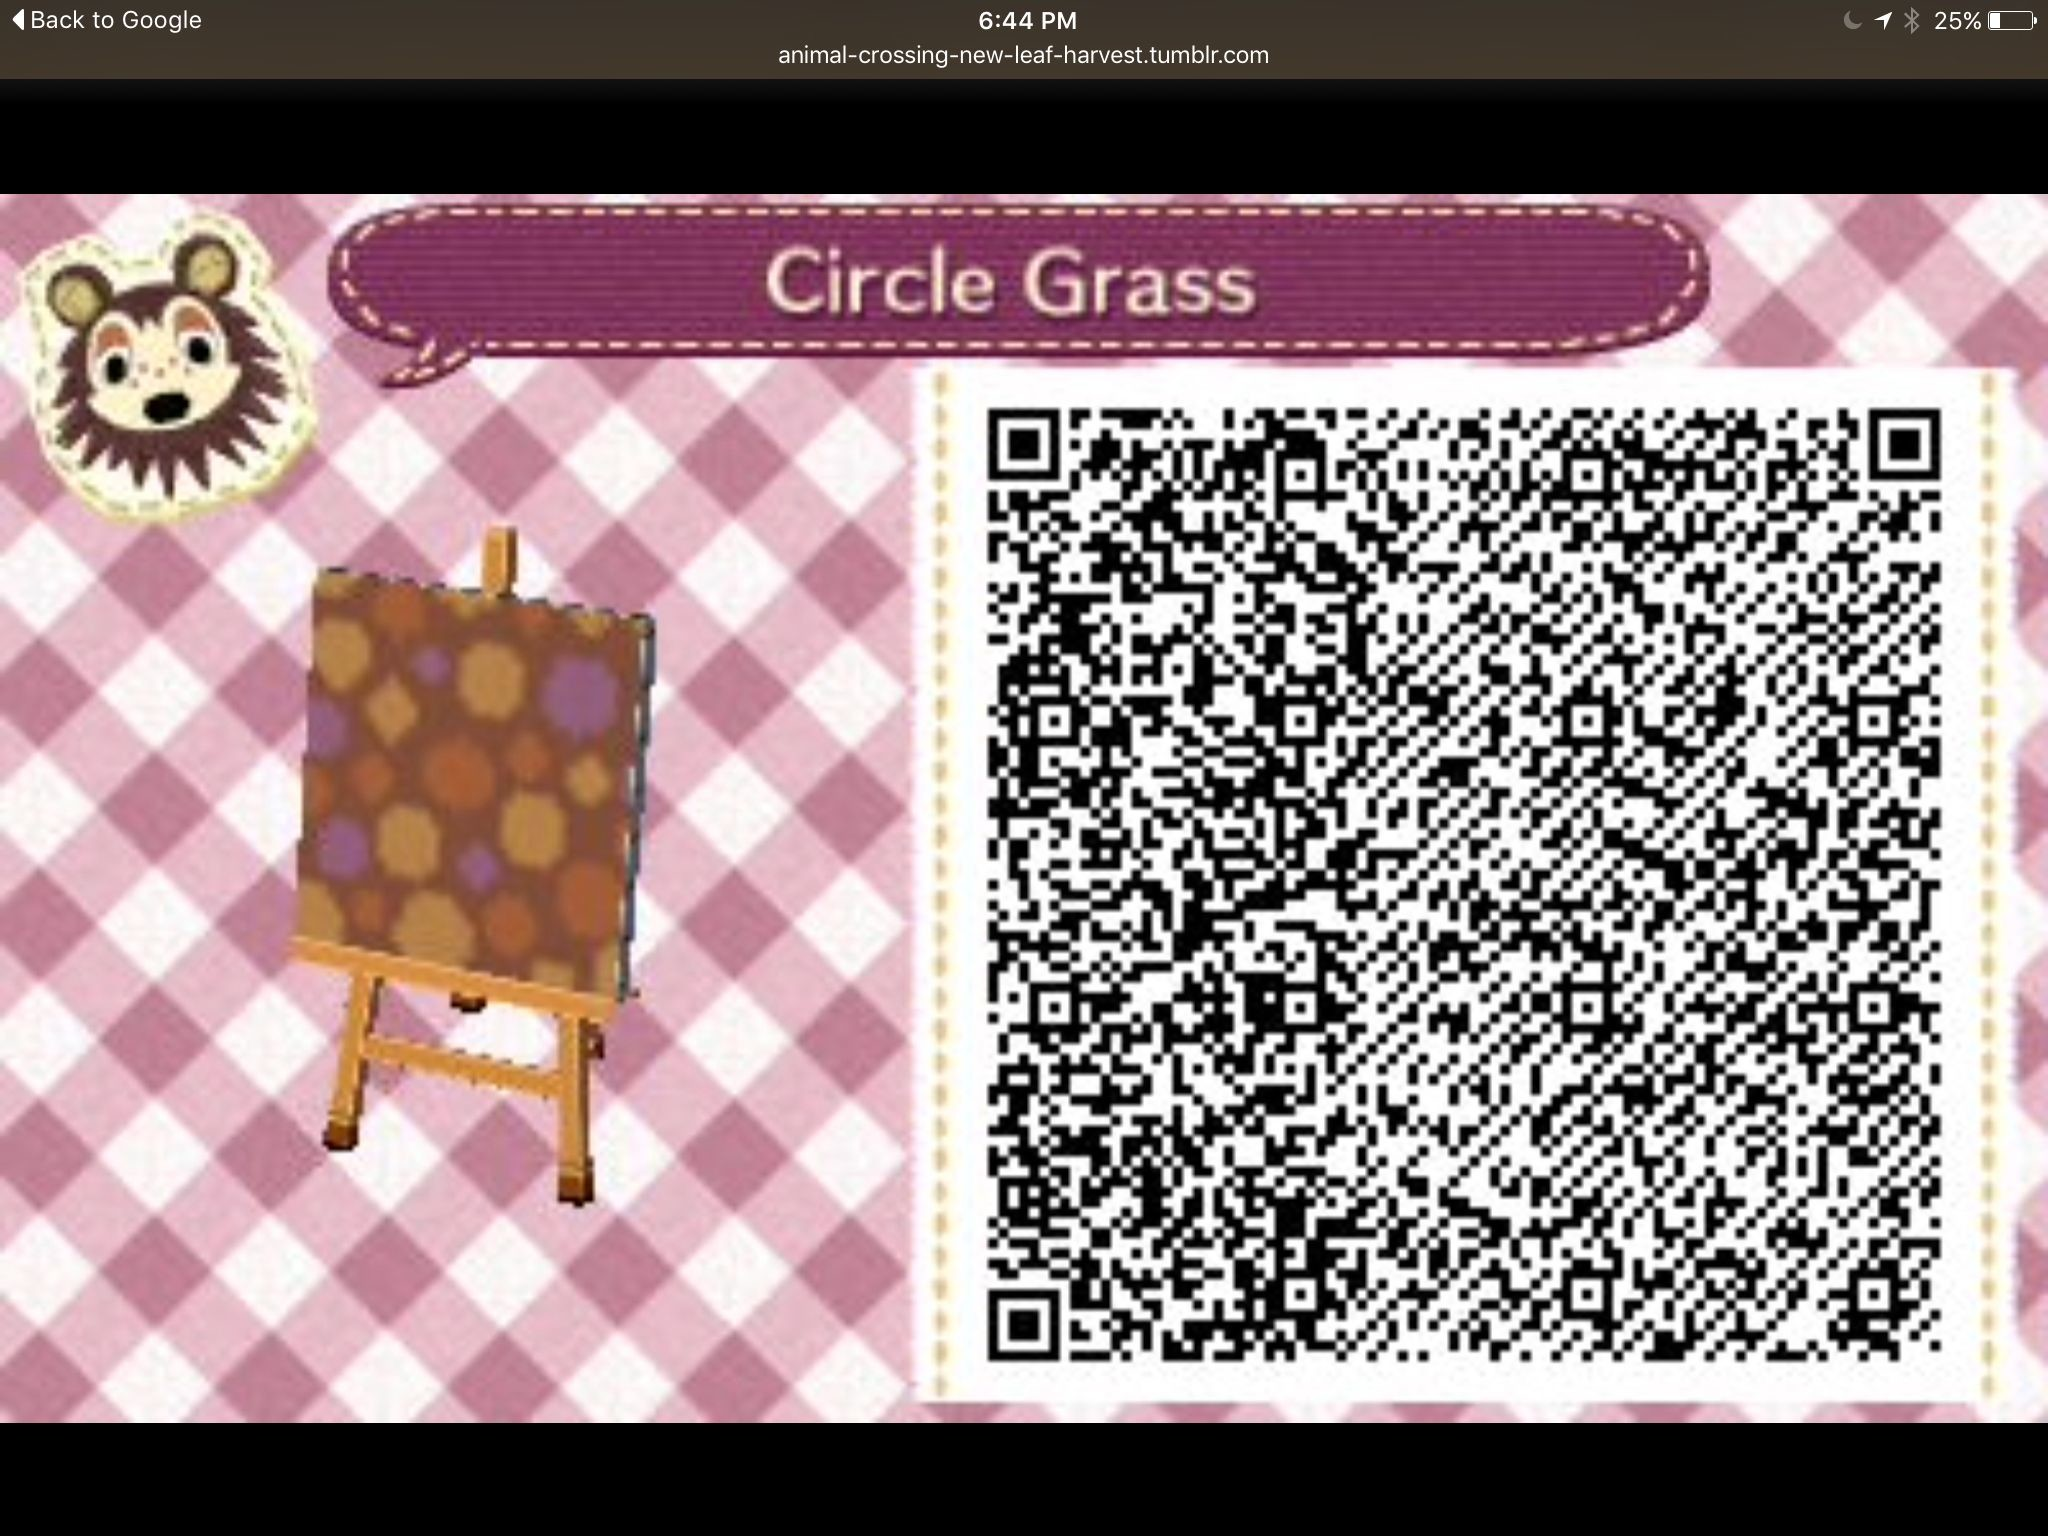 Res: 2048x1536, Qr code autumn circle grass animal crossing